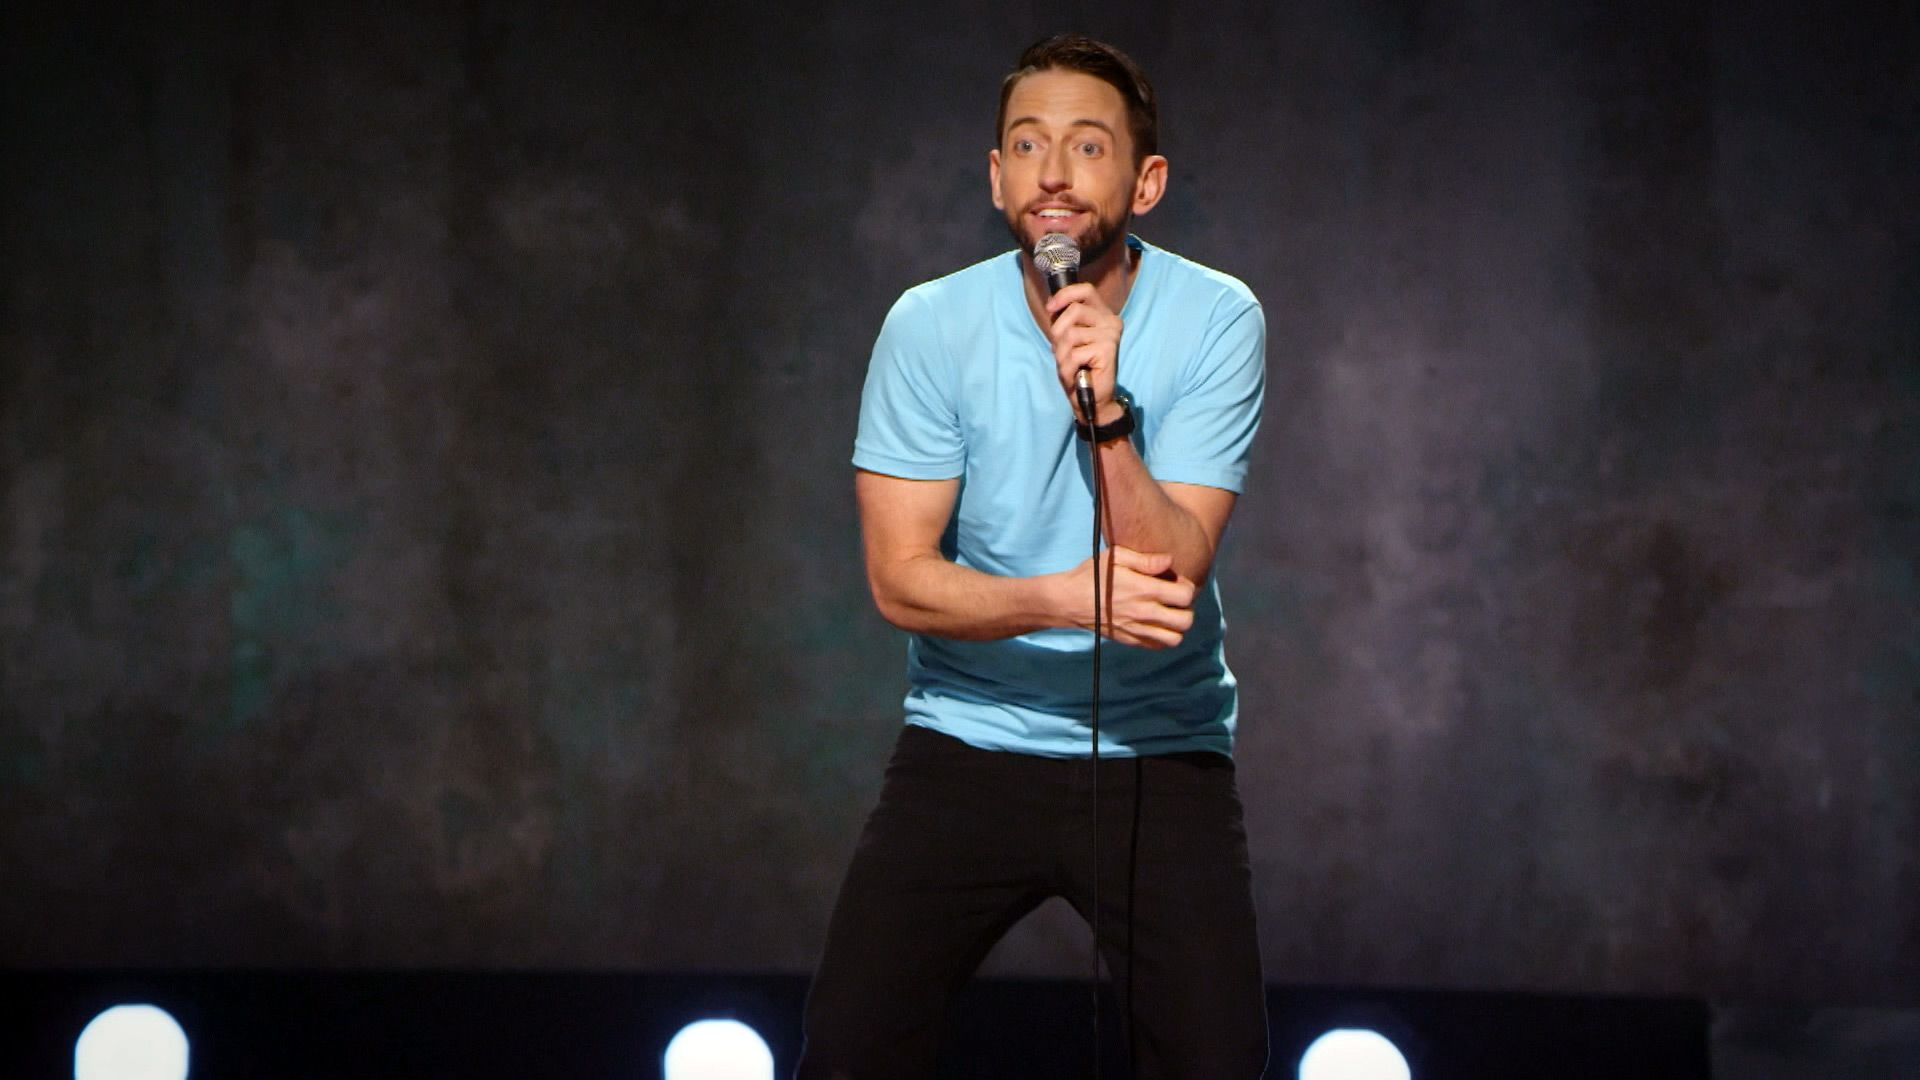 Neal brennan comedy central